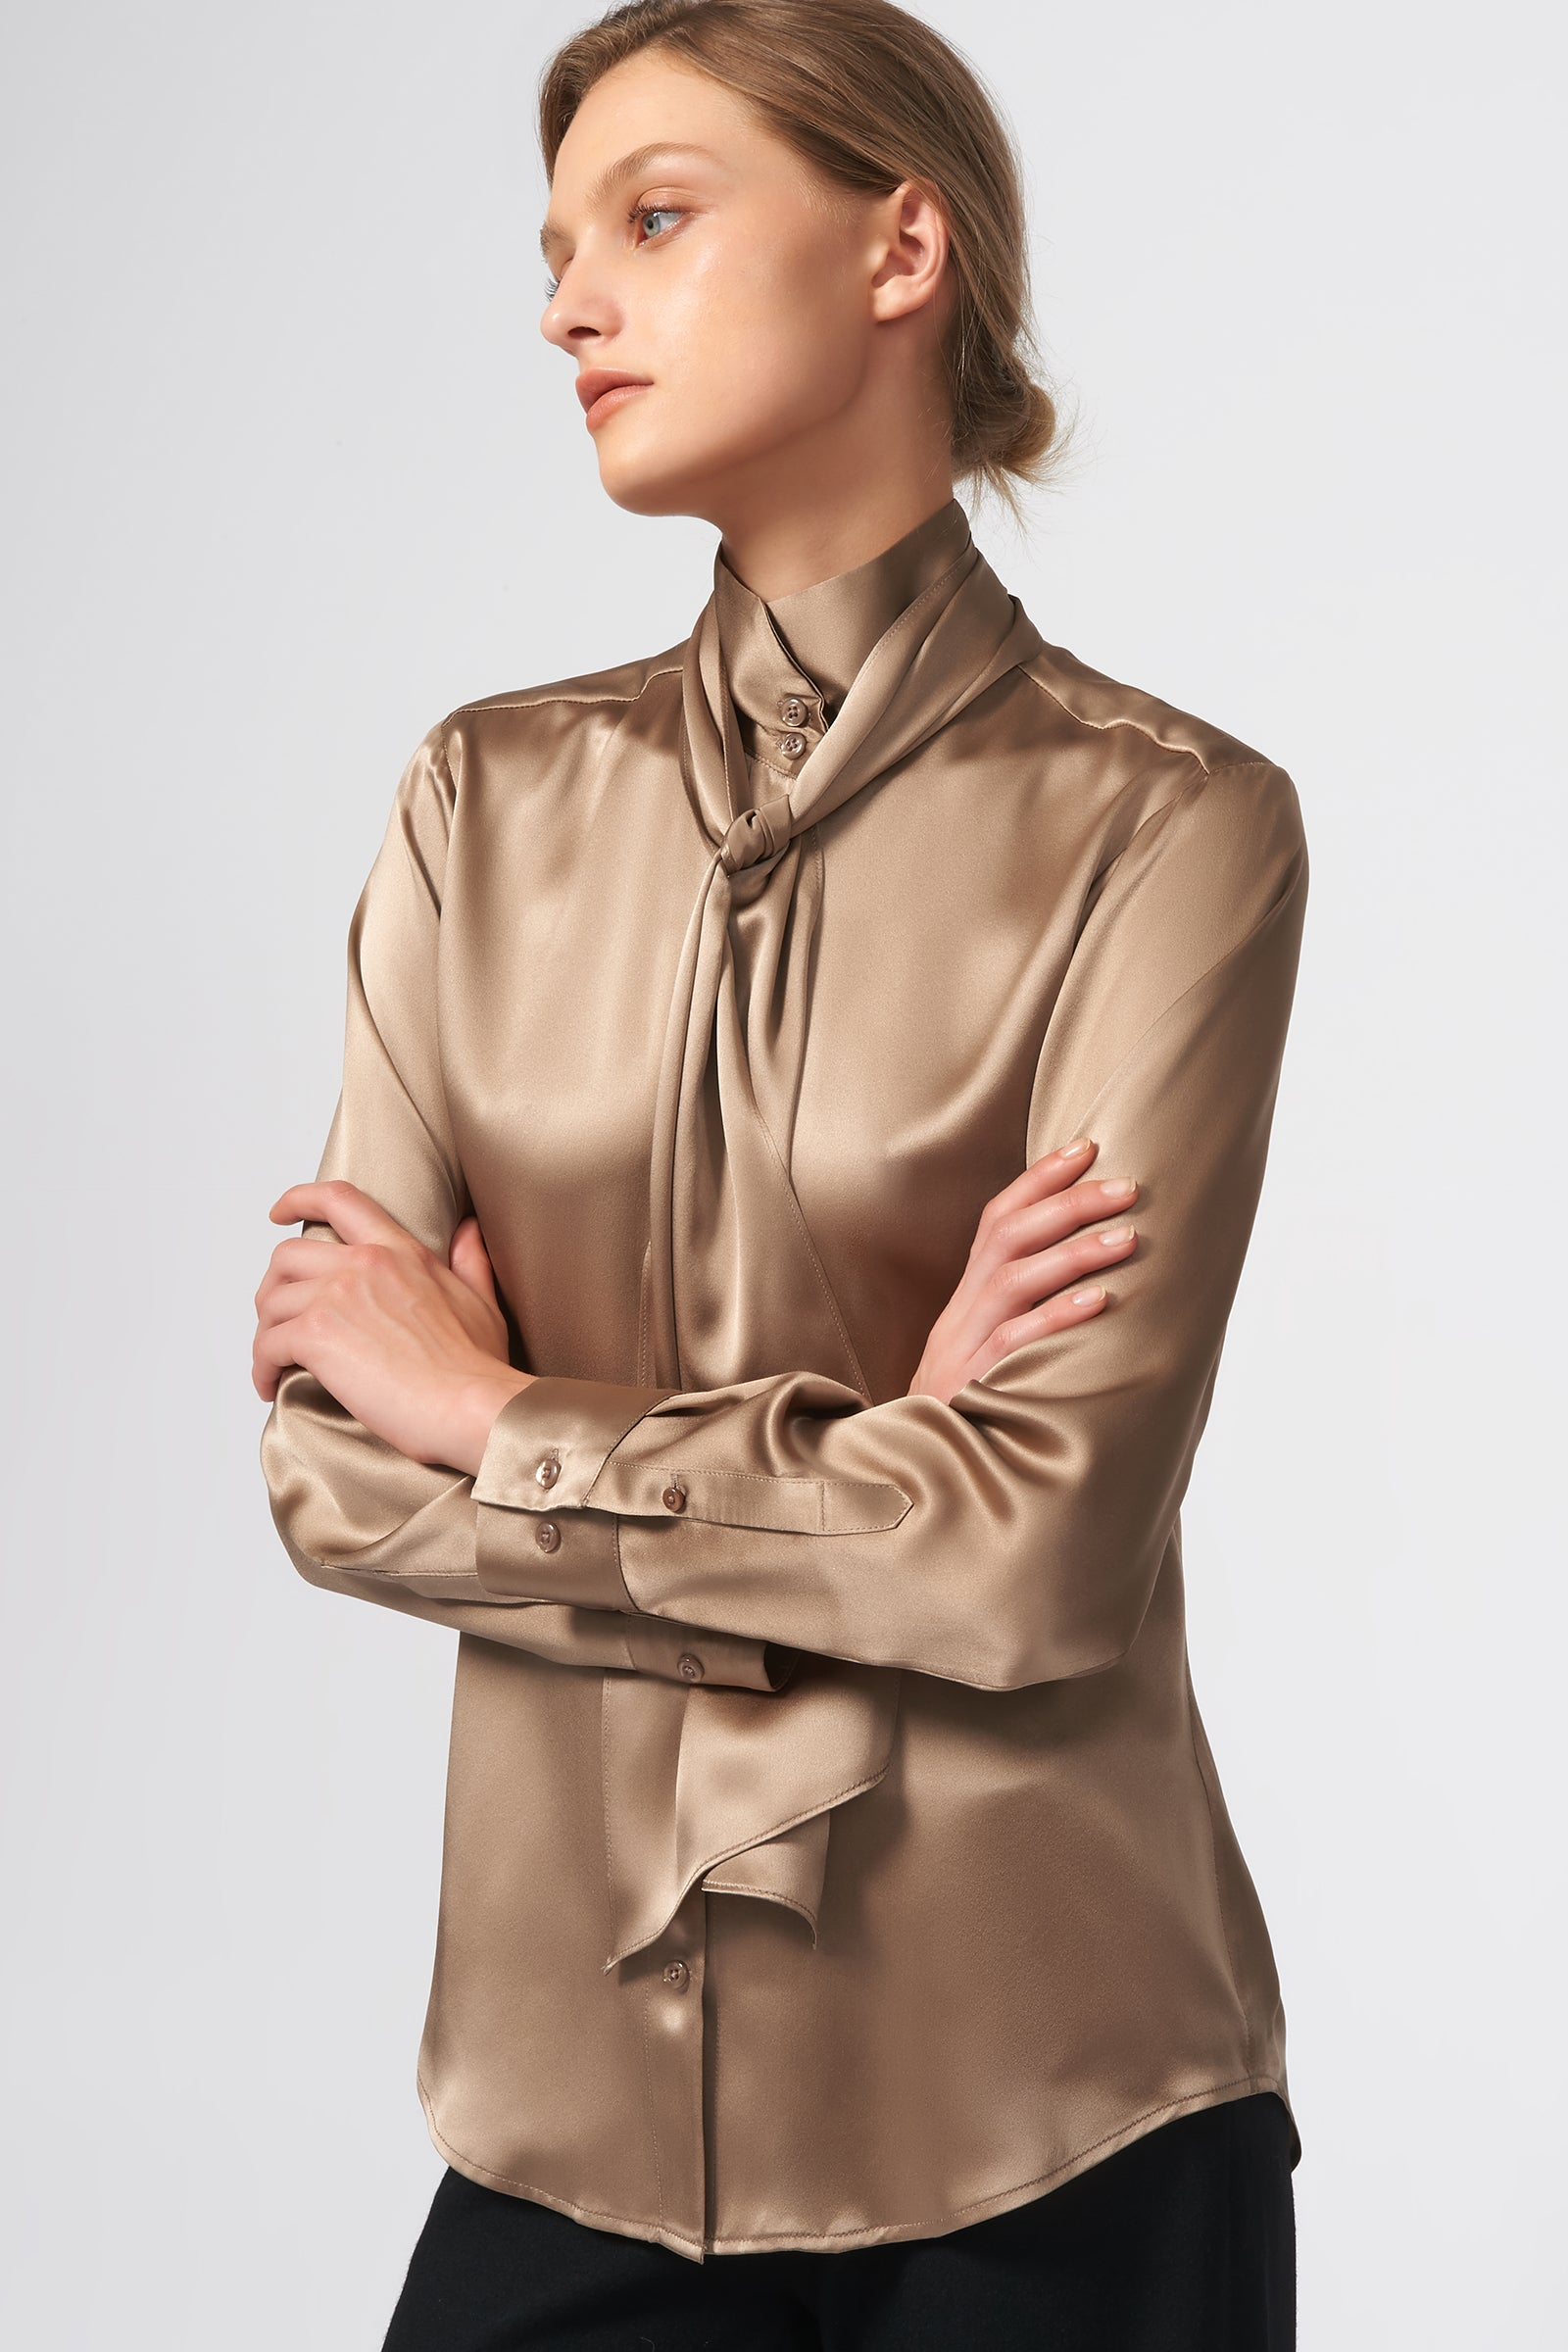 Kal Rieman Scarf Tie Blouse in Charmeuse on Model Side View